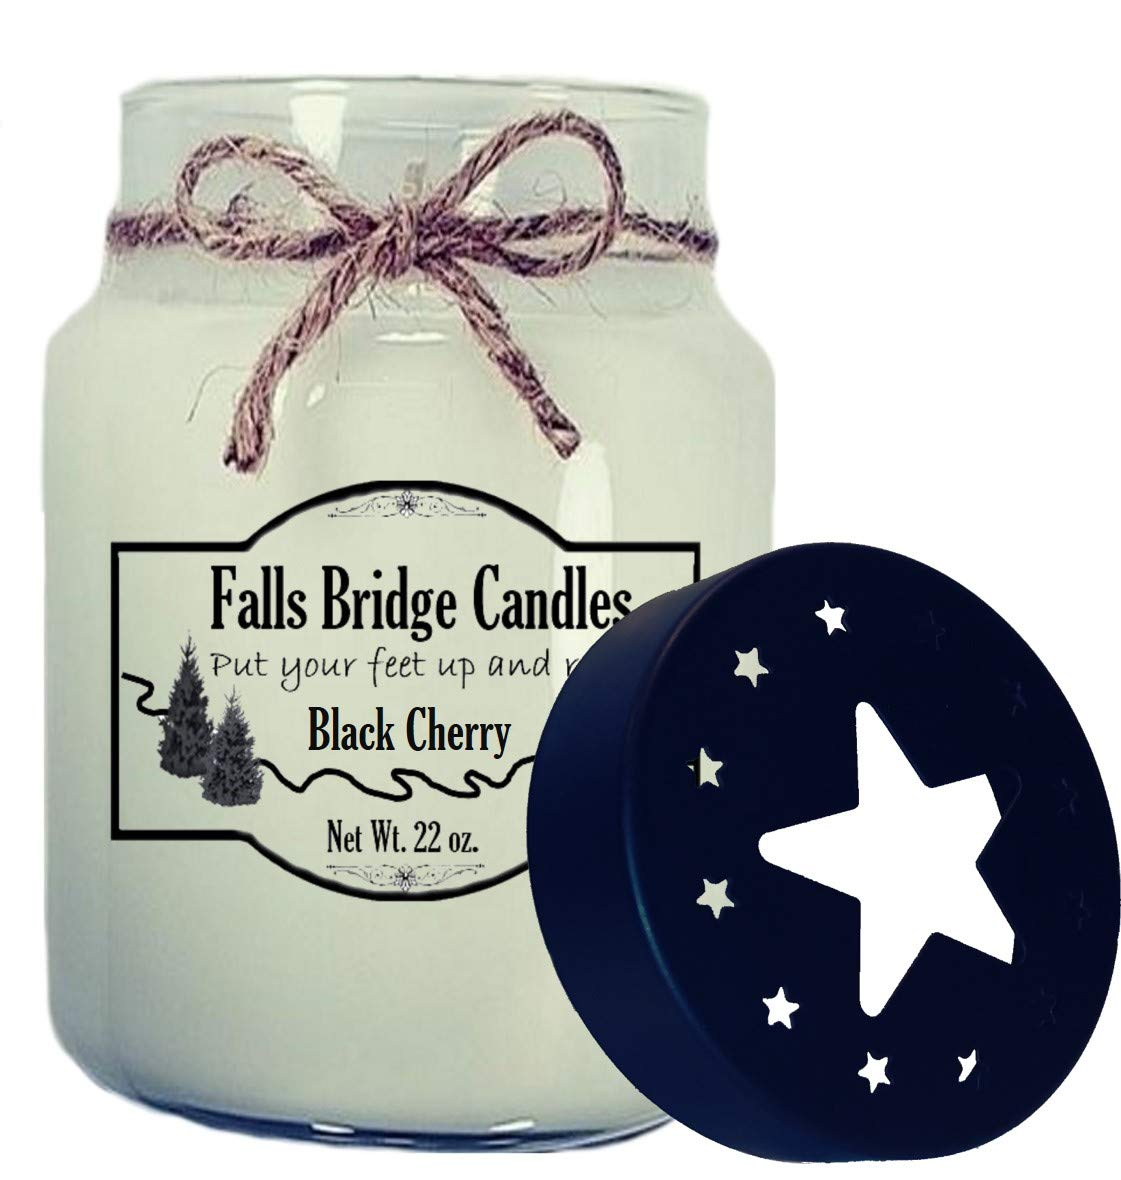 22 oz w//Star Lid Falls Bridge Candles BLKCHRY26S Black Cherry Soy Blend Scented Jar Candle